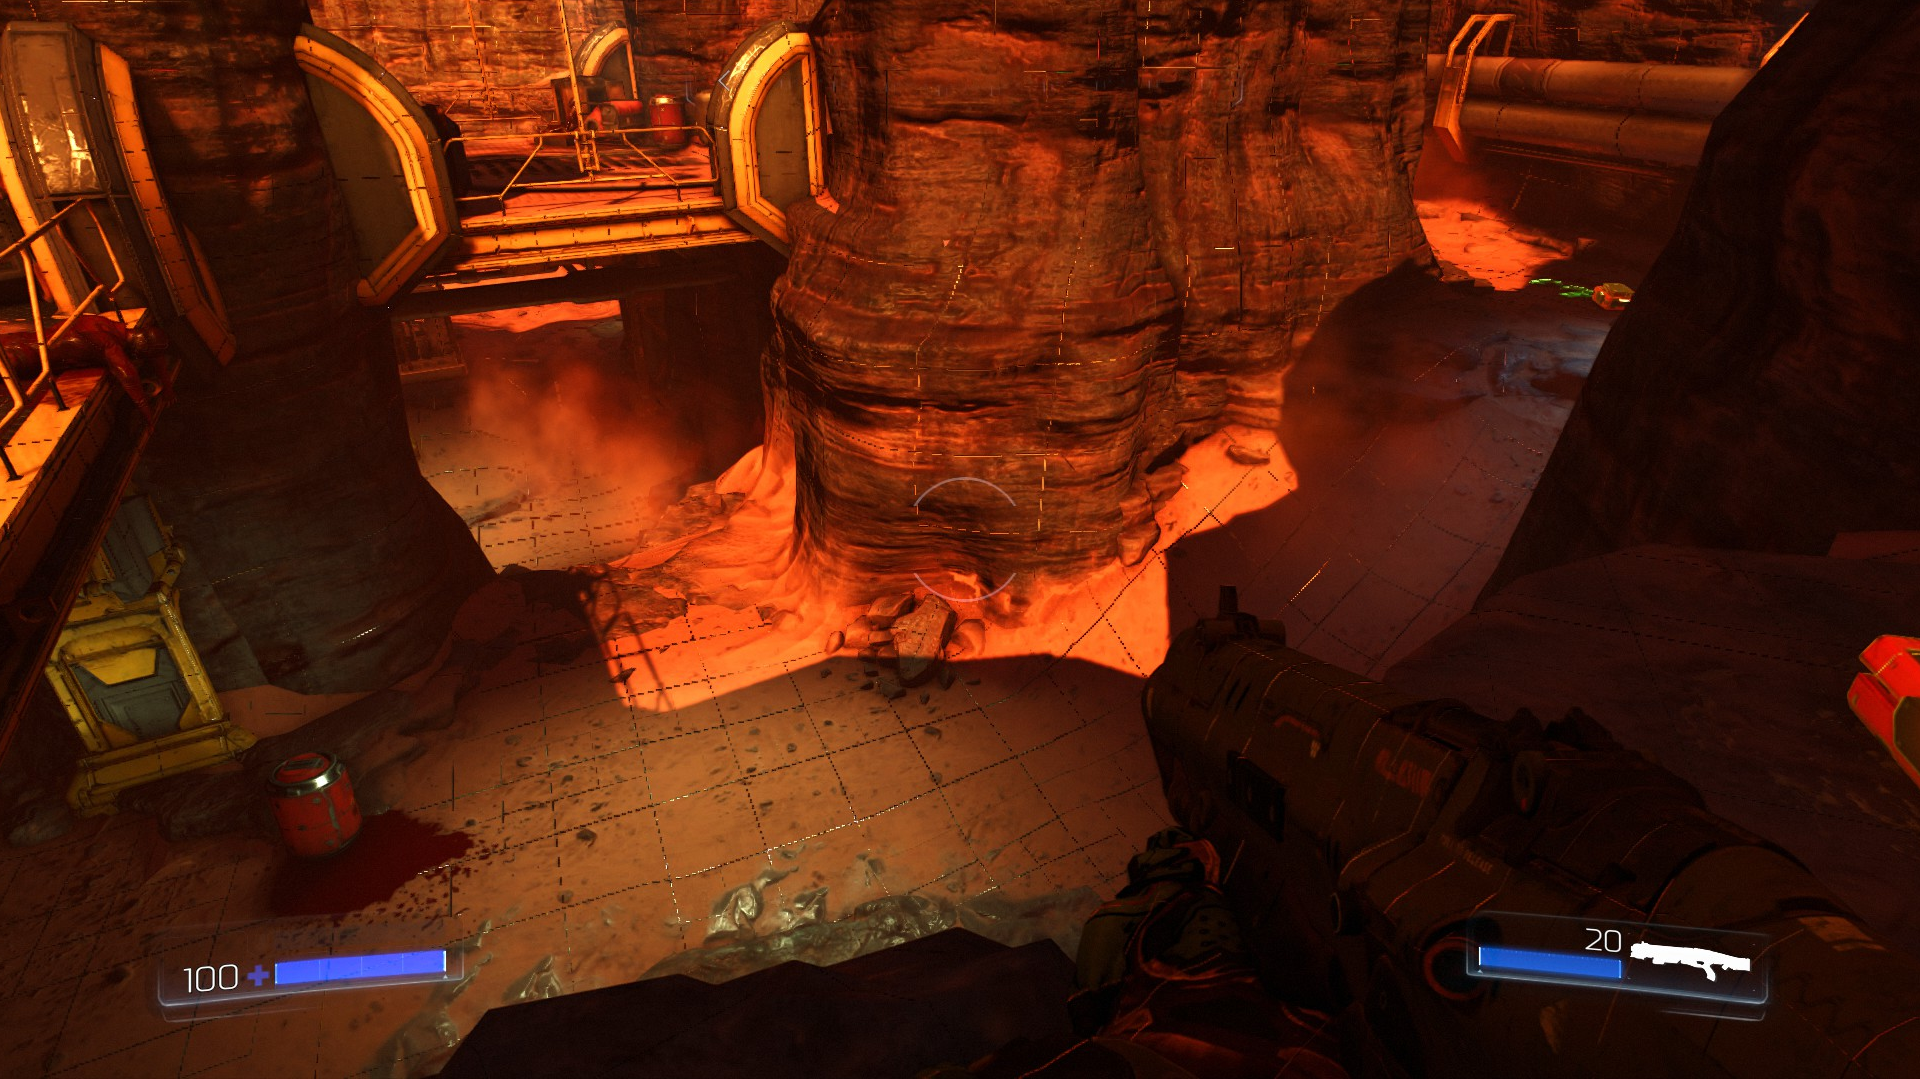 Official] Doom 4 Information and Discussion - Page 108